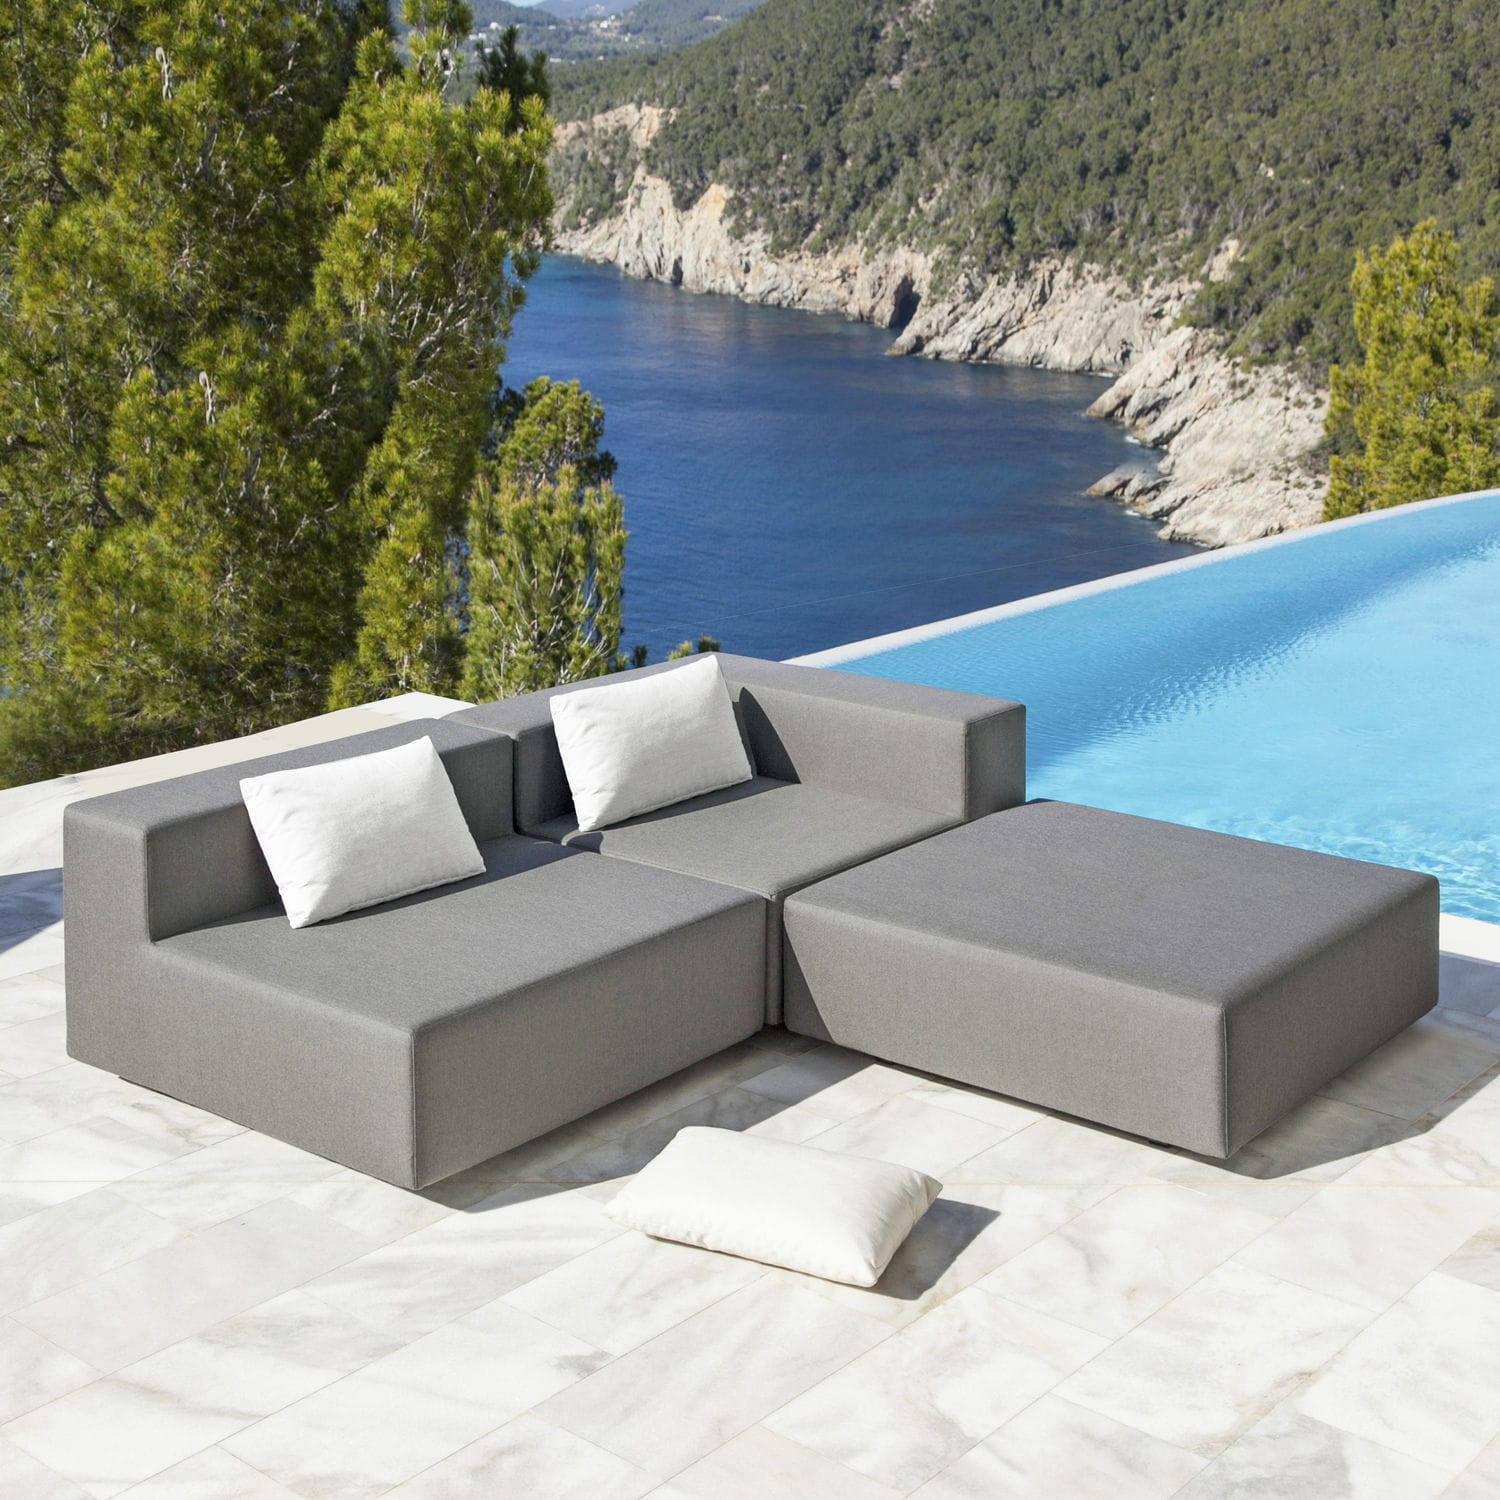 Modular Sofa Design Garden Water